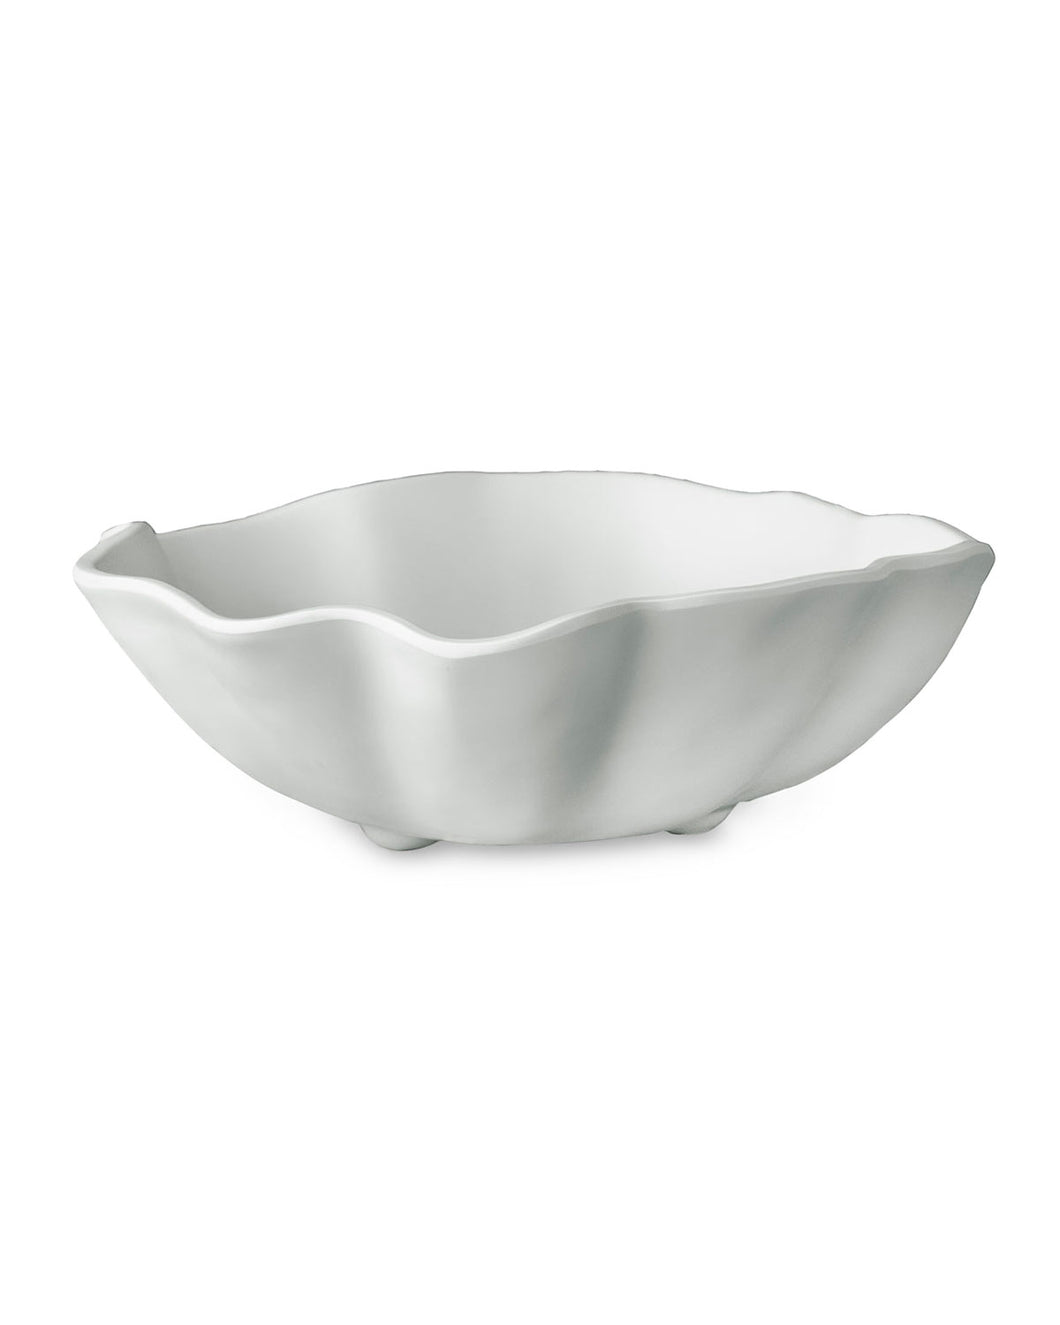 VIDA Nube Medium Bowl